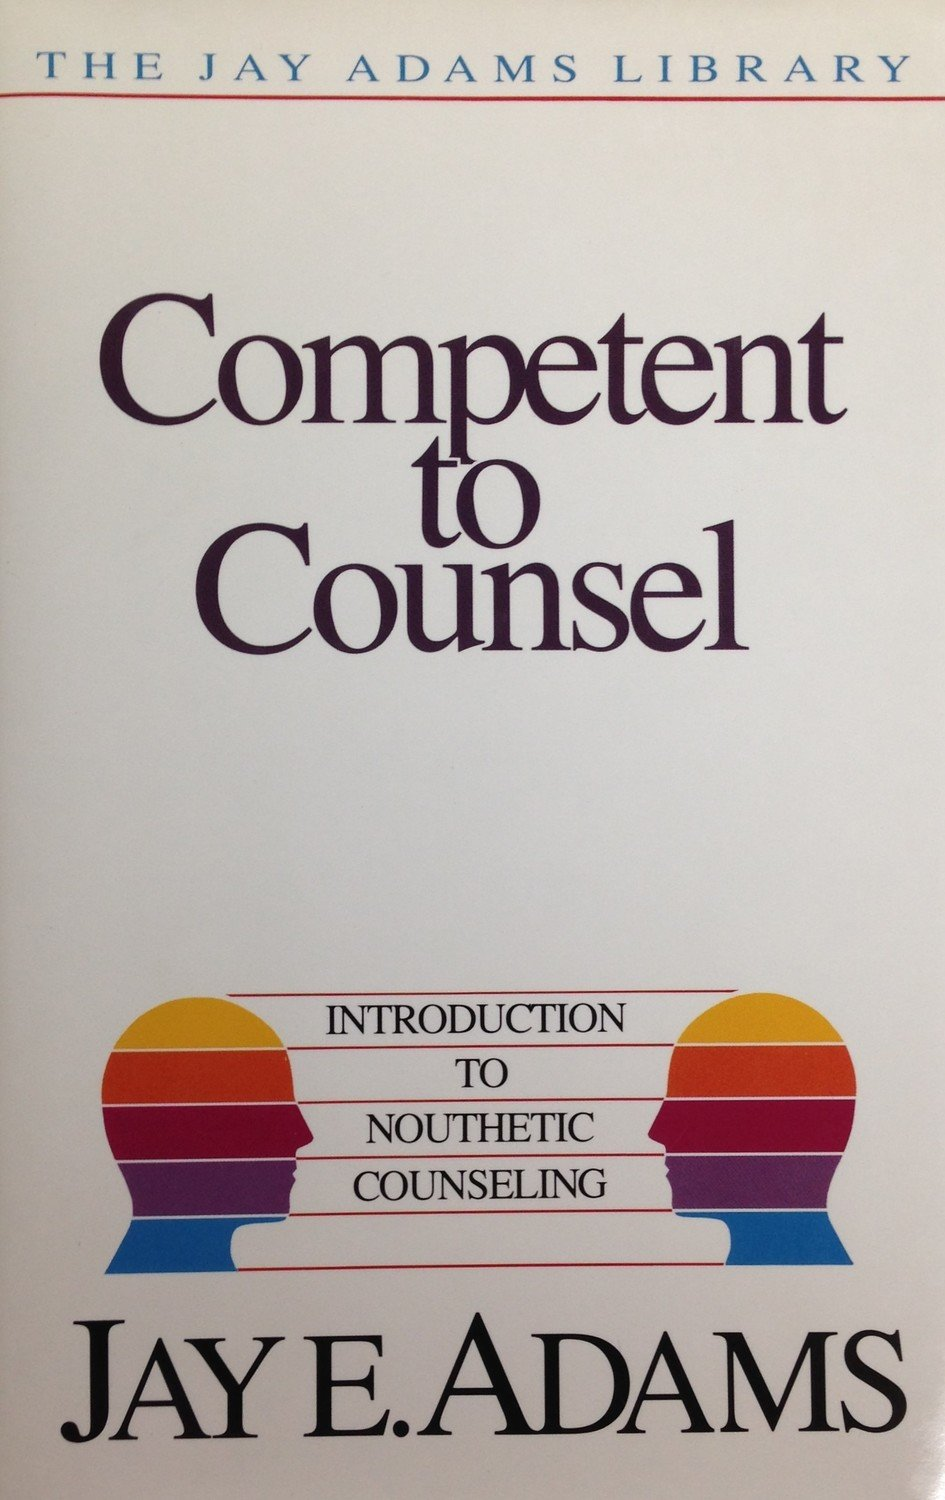 Competent to Counsel:  Introduction to Nouthetic Counseling by Jay E. Adams (Hardback)